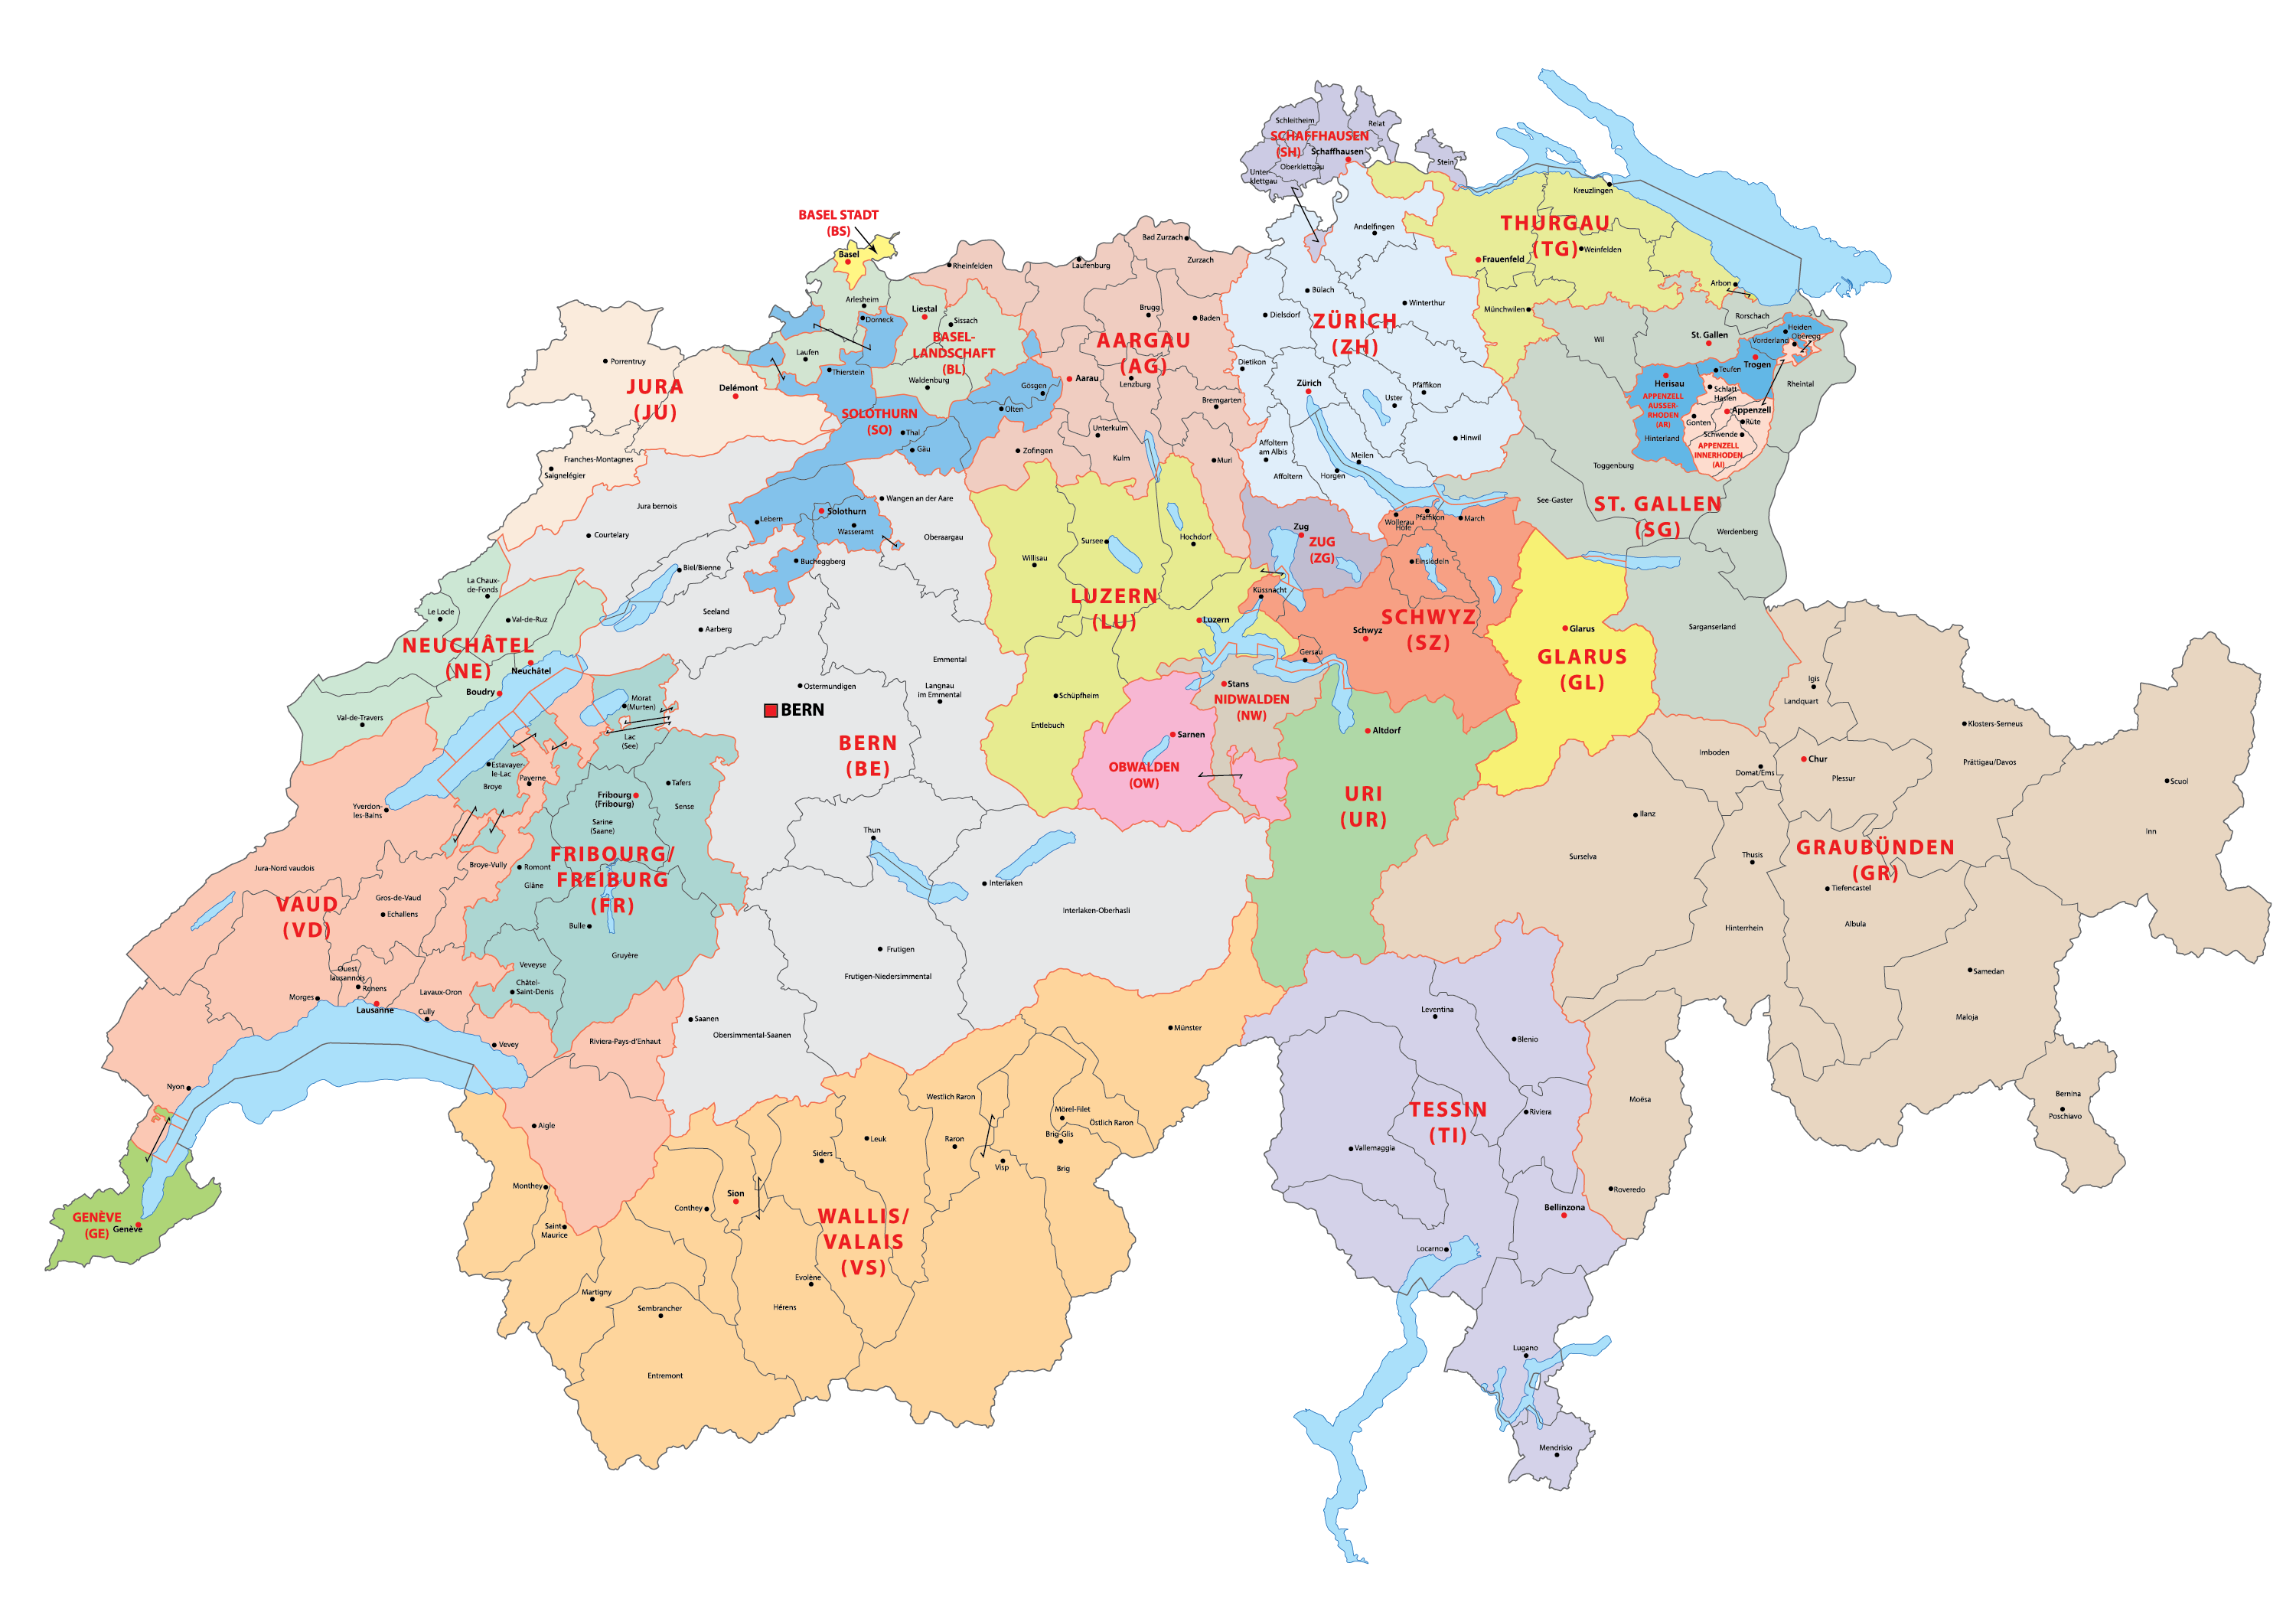 Political Map of Switzerland showing 26 cantons and the capital city of Bern